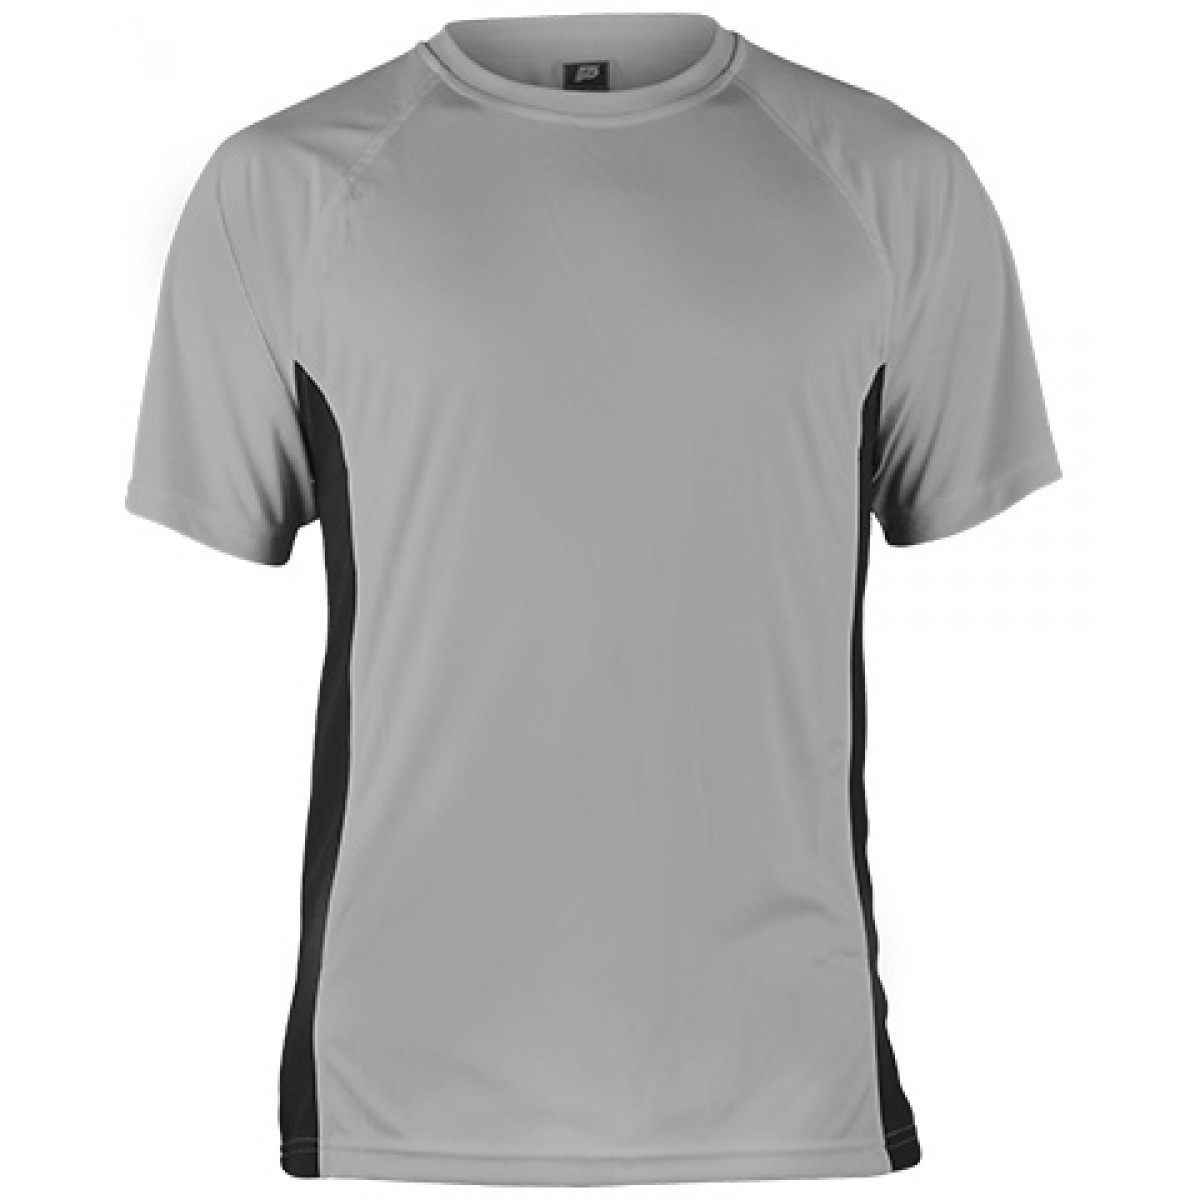 Short Sleeves Performance With Side Insert-Gray/Black-S